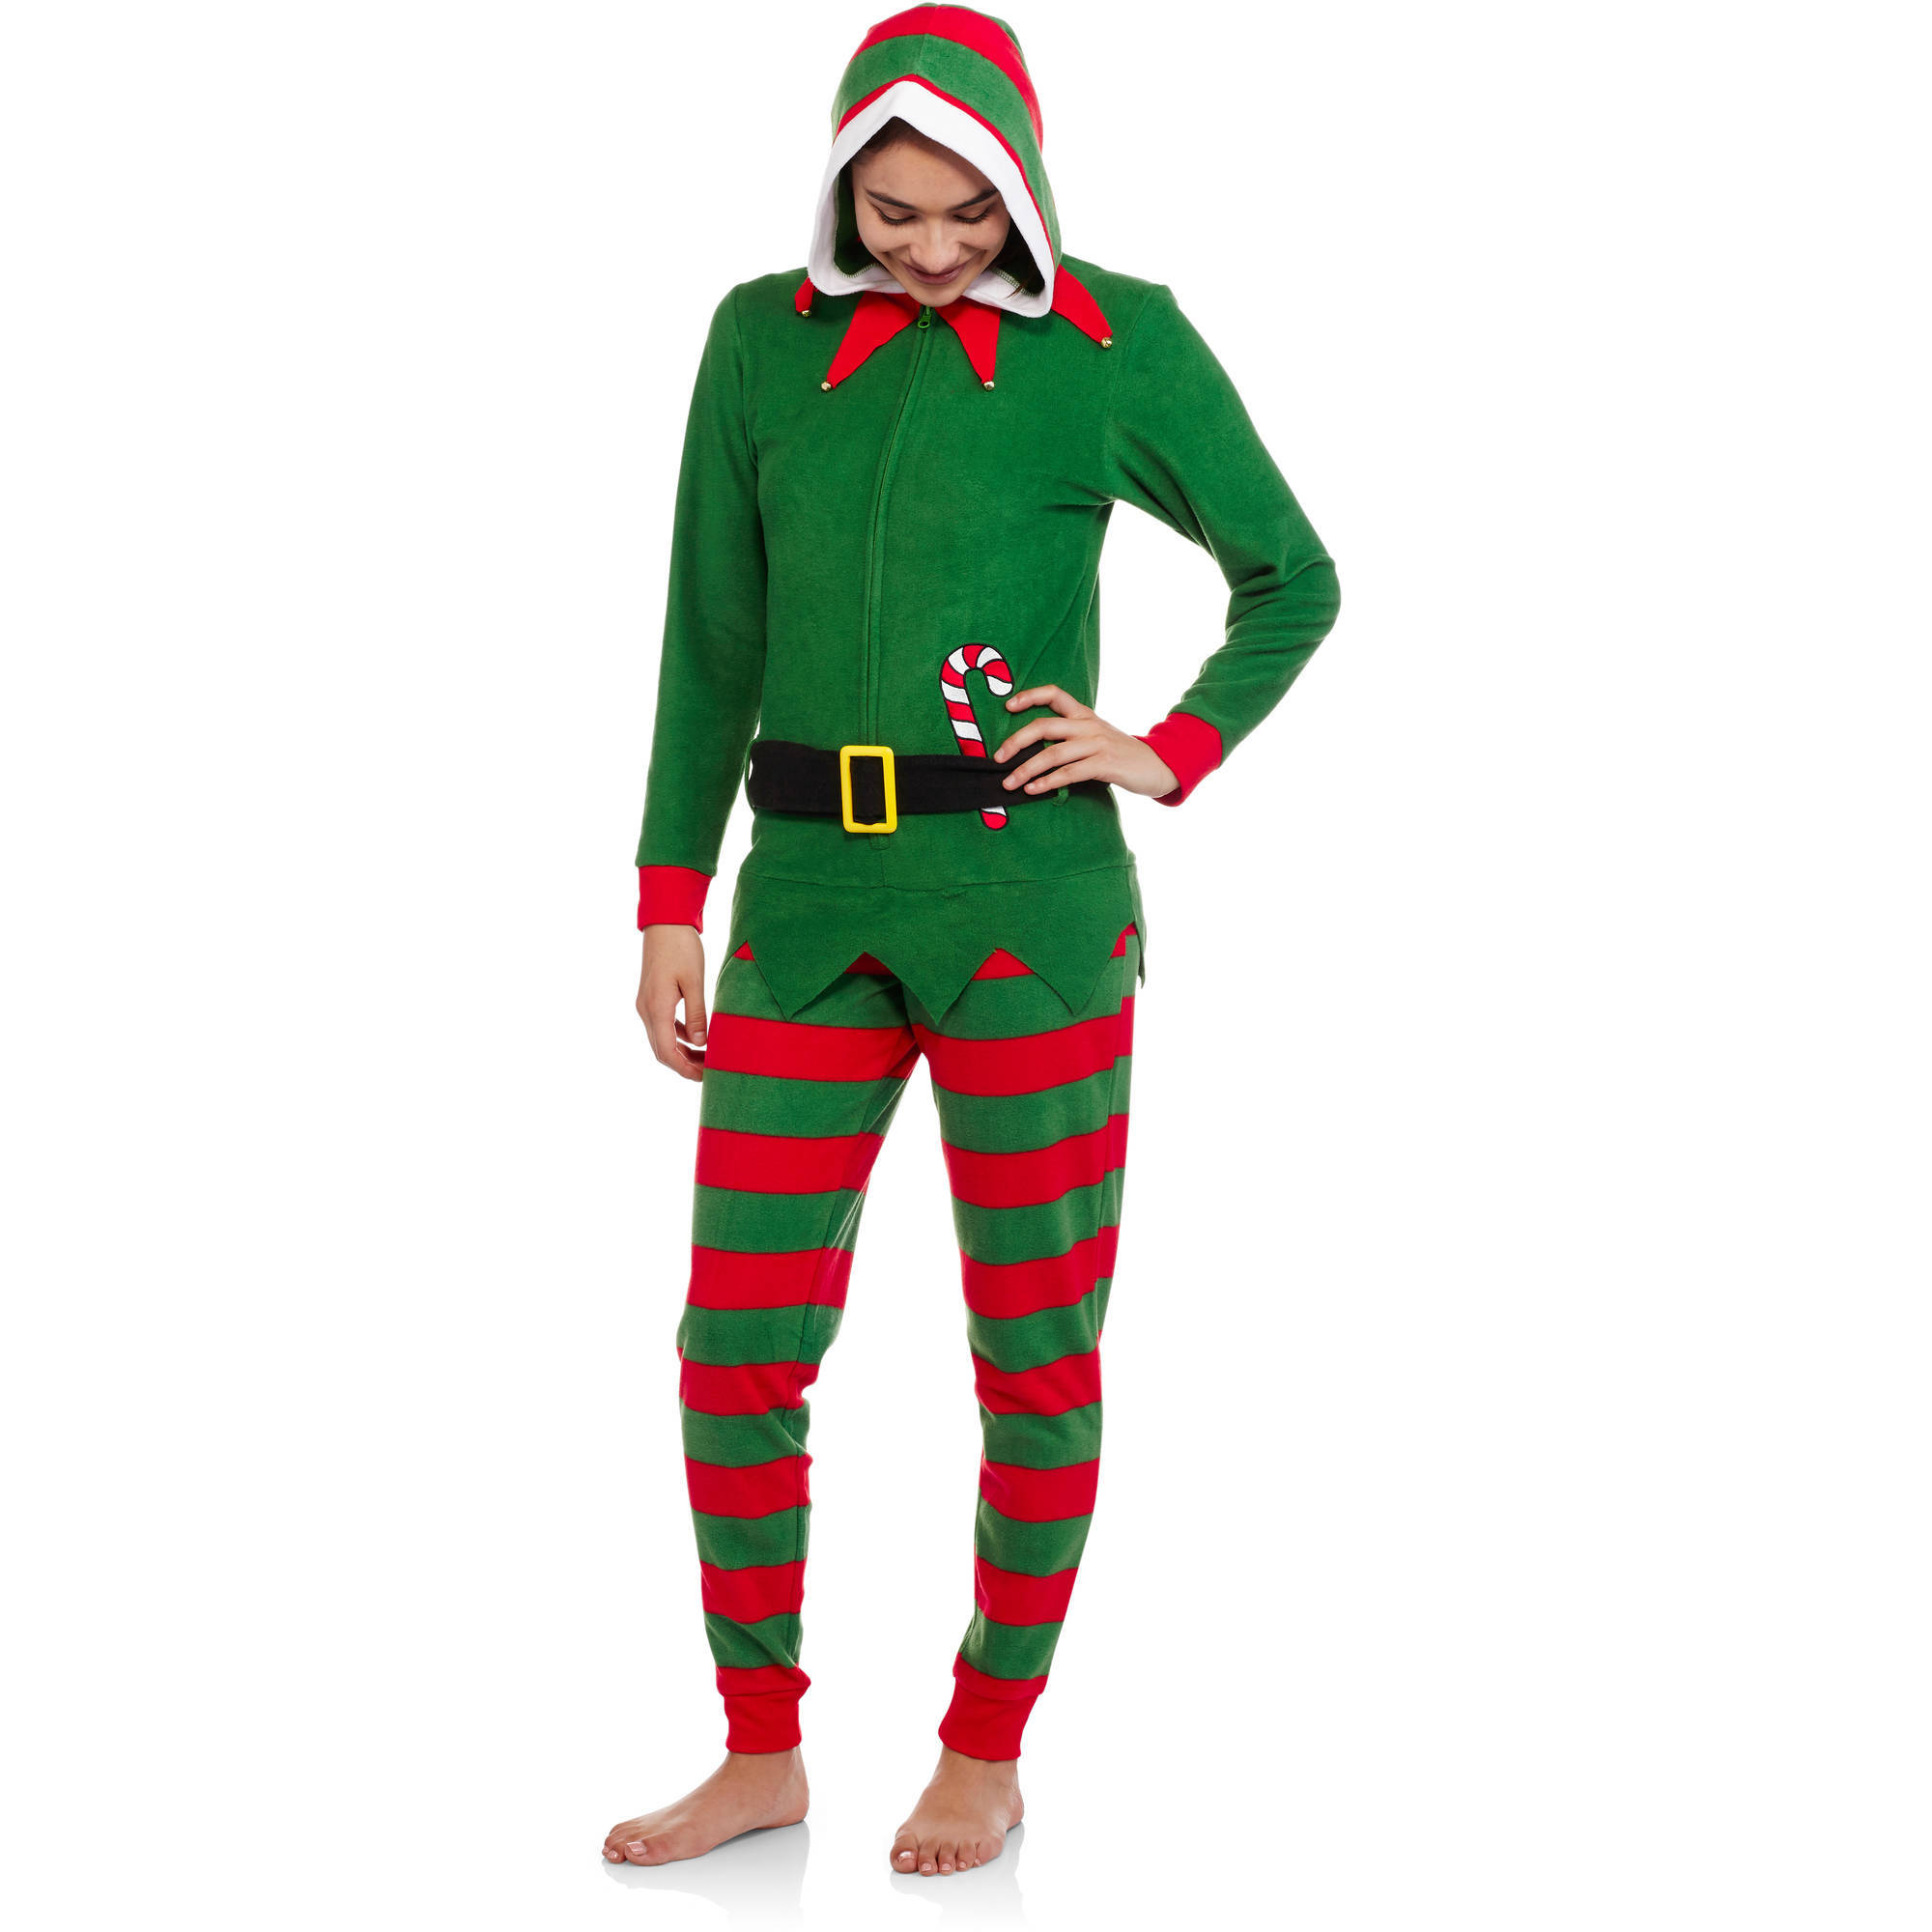 licensed elf womens licensed sleepwear adult onesie costume union suit pajama walmartcom